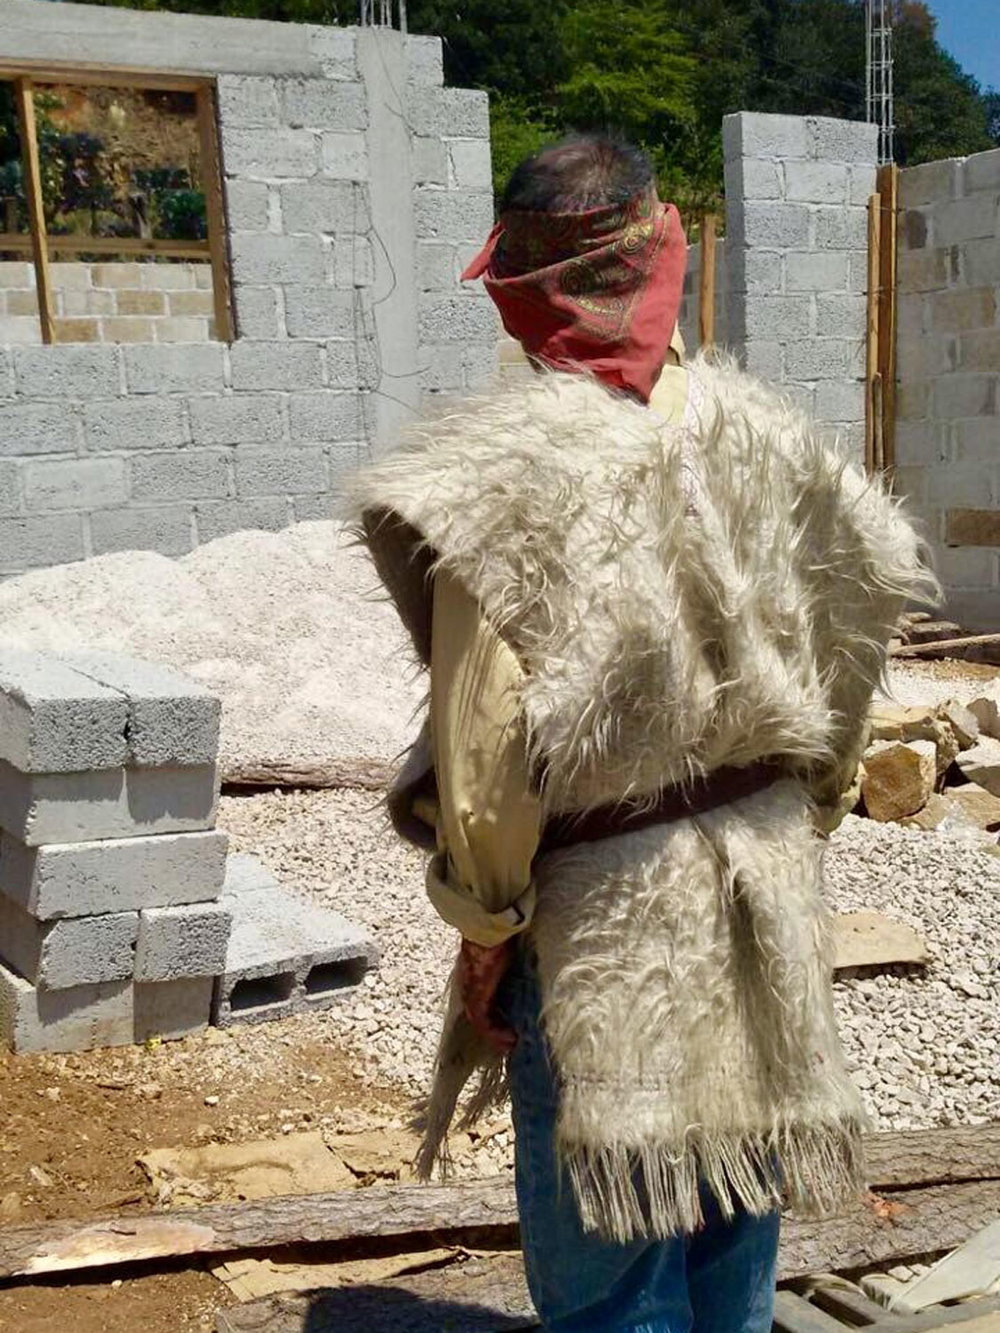 This Tzotzil man, building his house, wears the traditional white goat wool vest. Other men in the village wear black wool vests